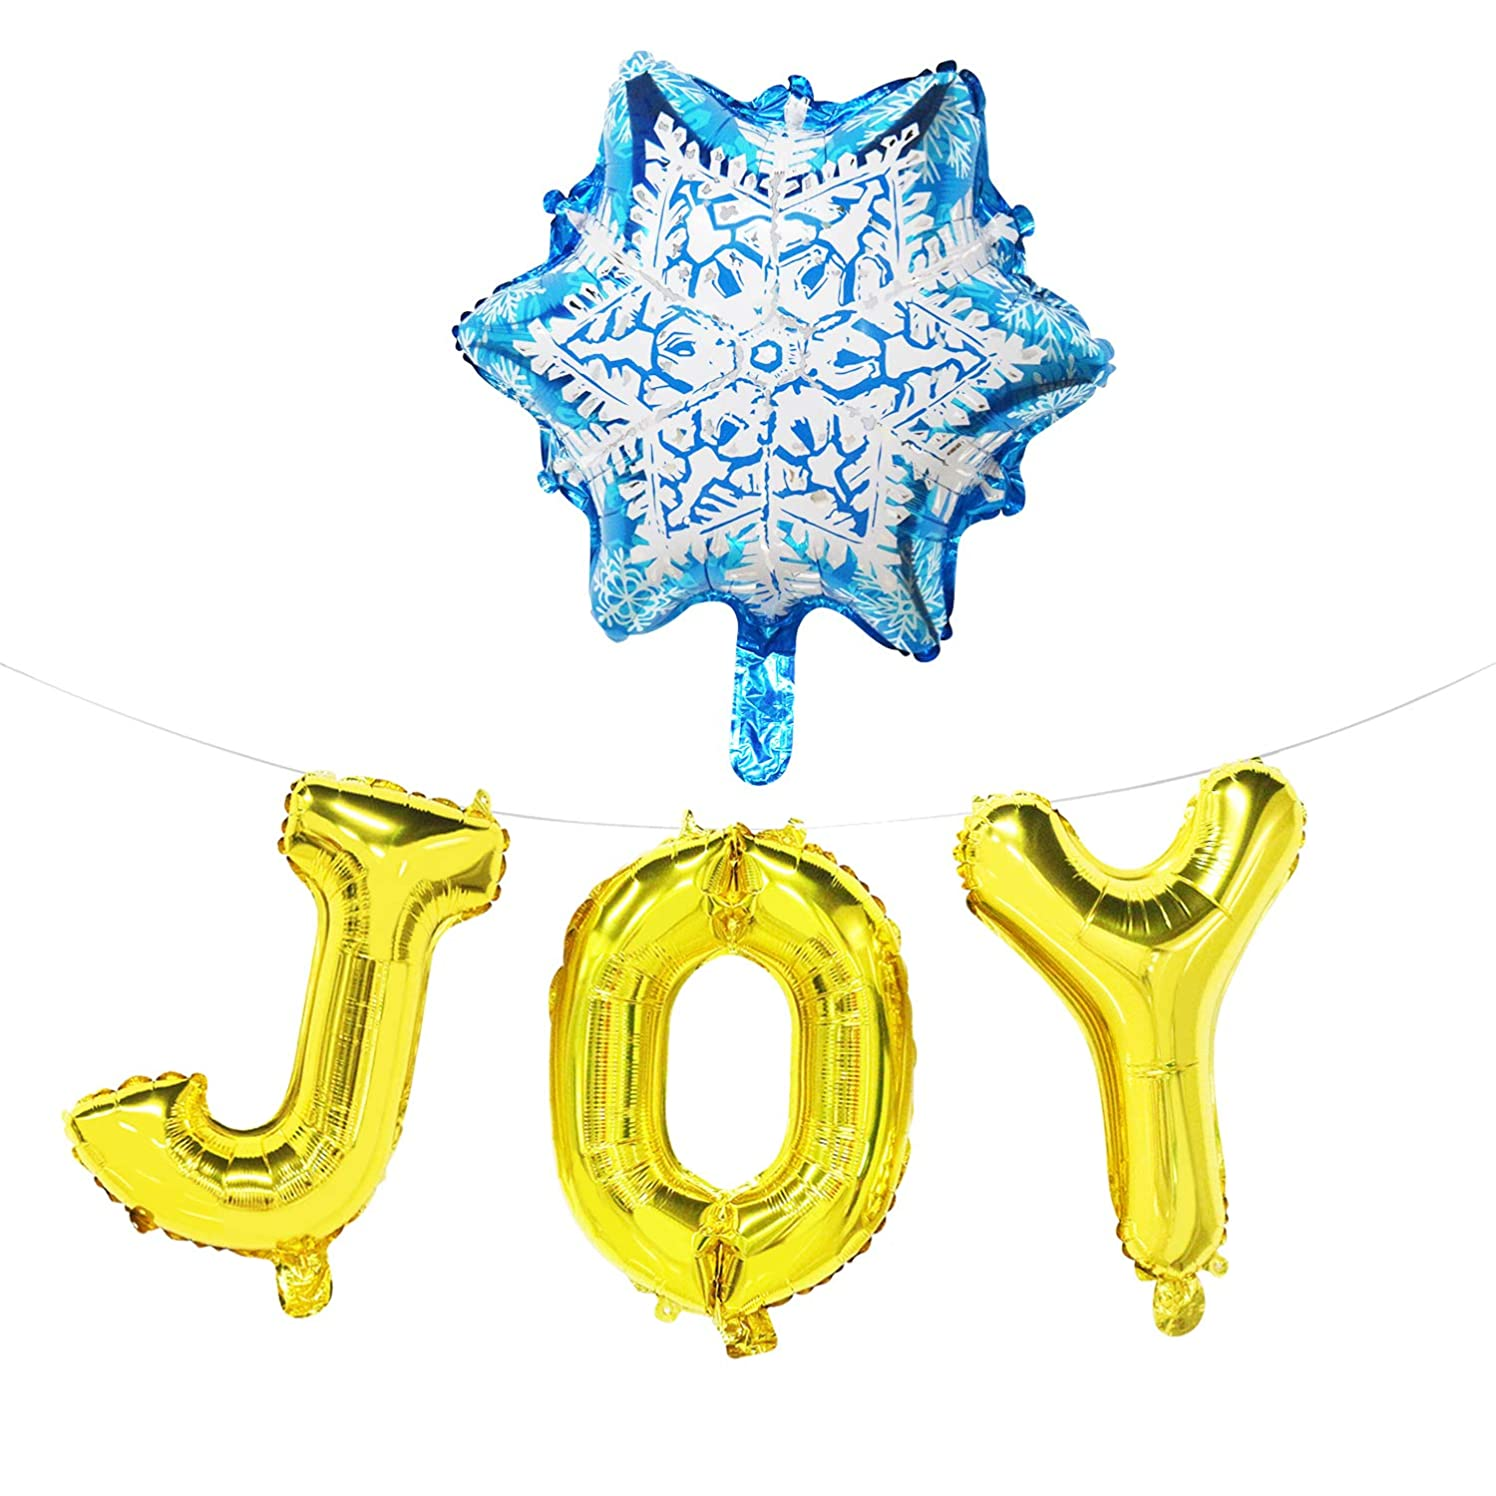 Joy Balloon Banner with Snowflake - Christmas Party Decorations Rose Gold - Holiday Signs Decor Hanging - 16inch